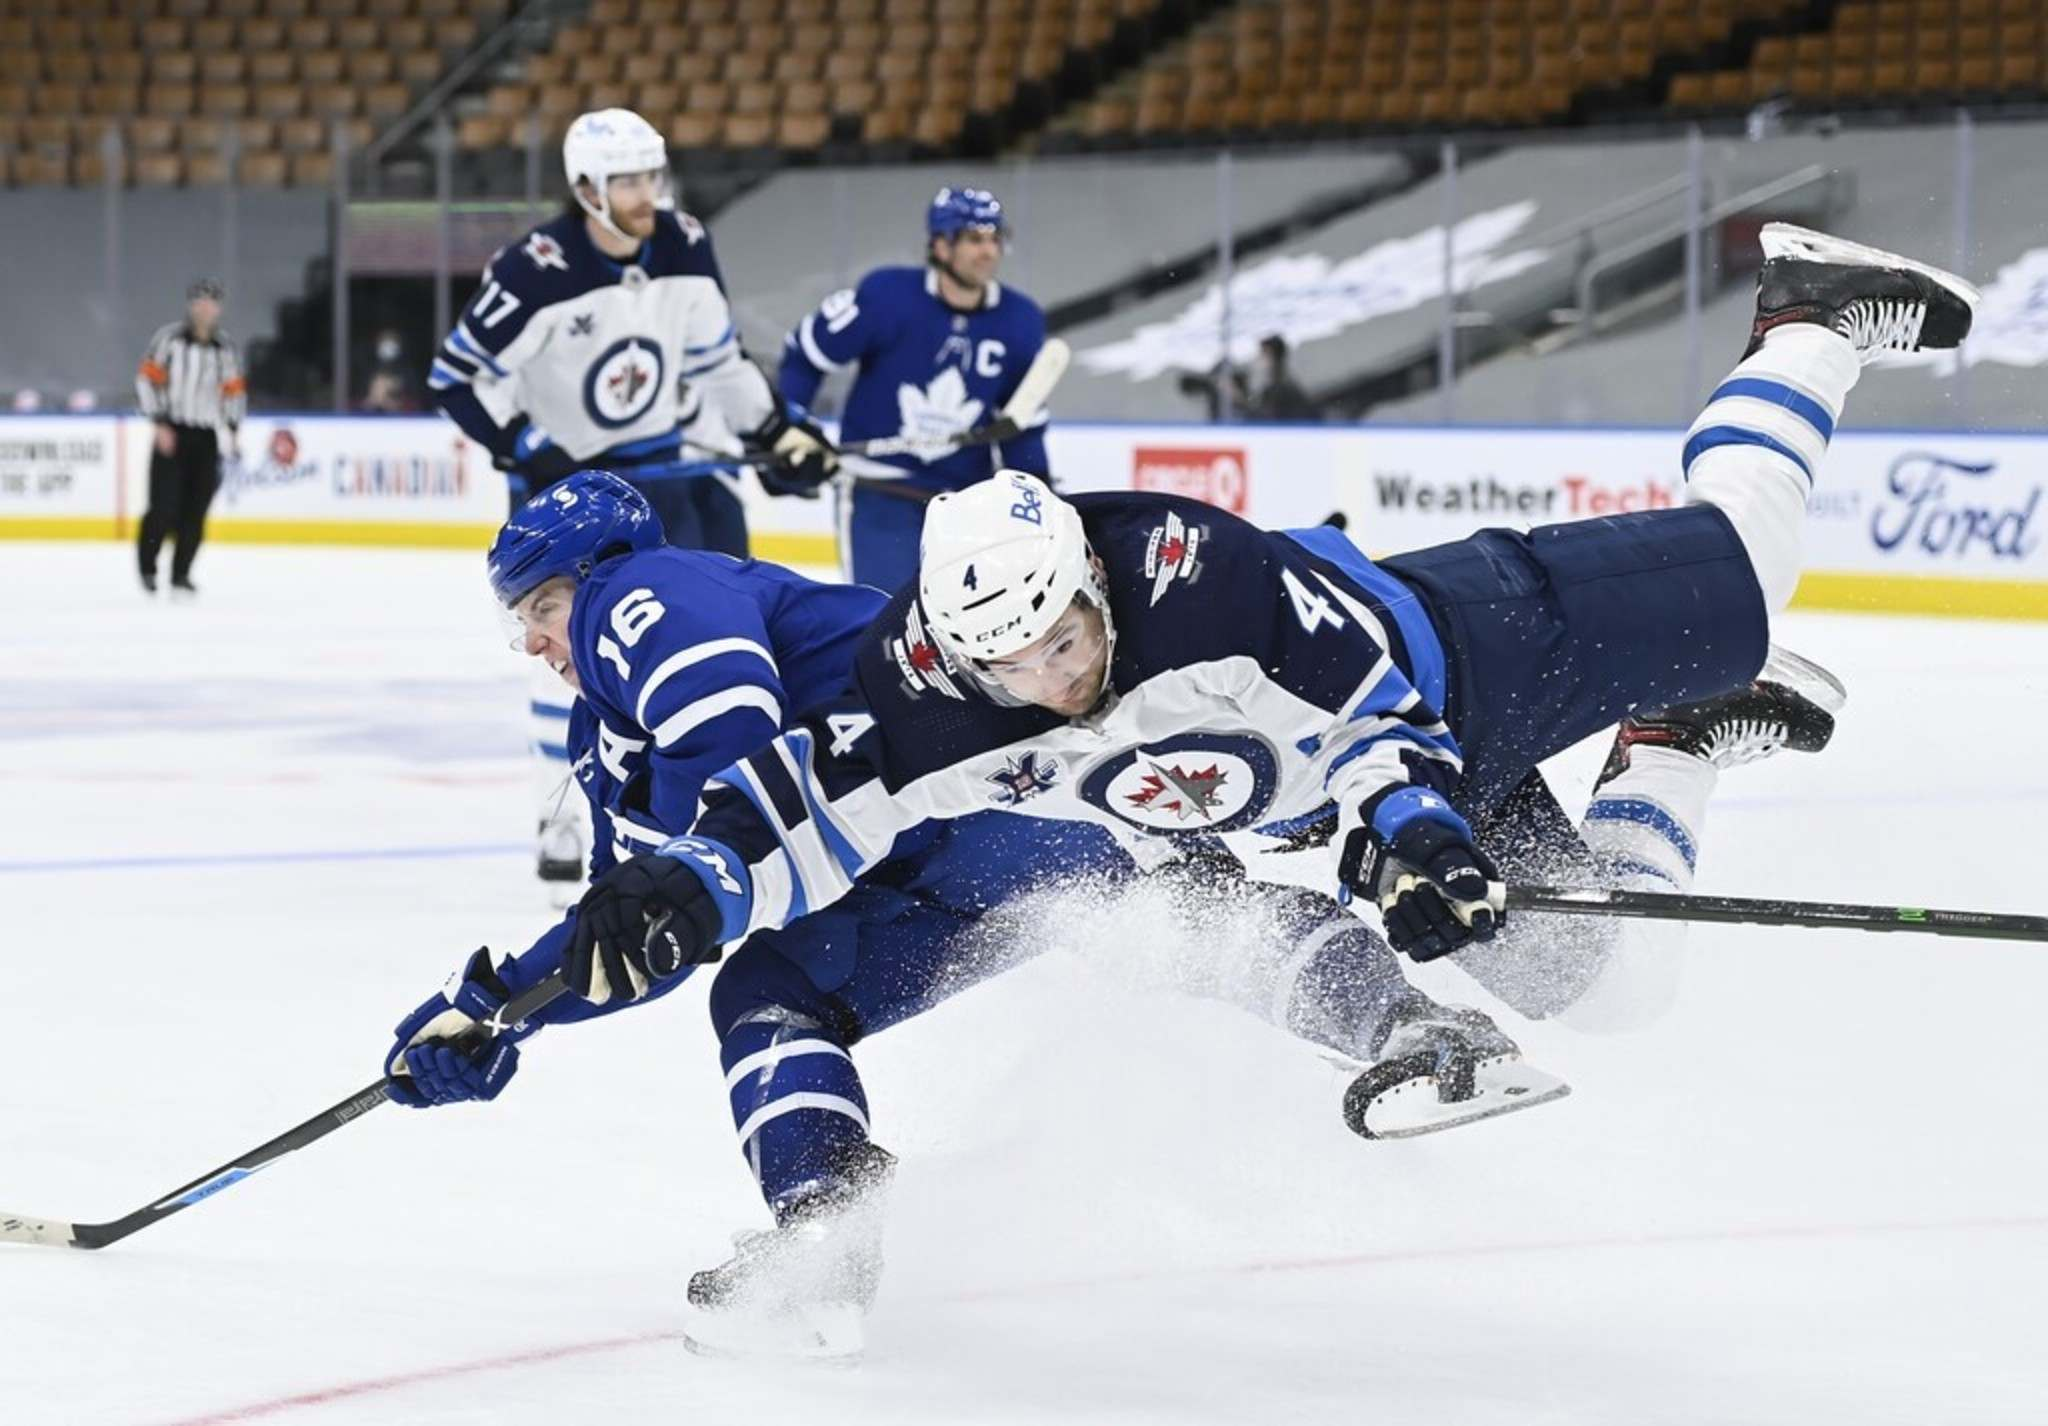 Toronto Maple Leafs right wing Mitchell Marner scores on an empty net and takes a hit from Winnipeg Jets defenceman Neal Pionk during third period NHL hockey action in Toronto on Monday.